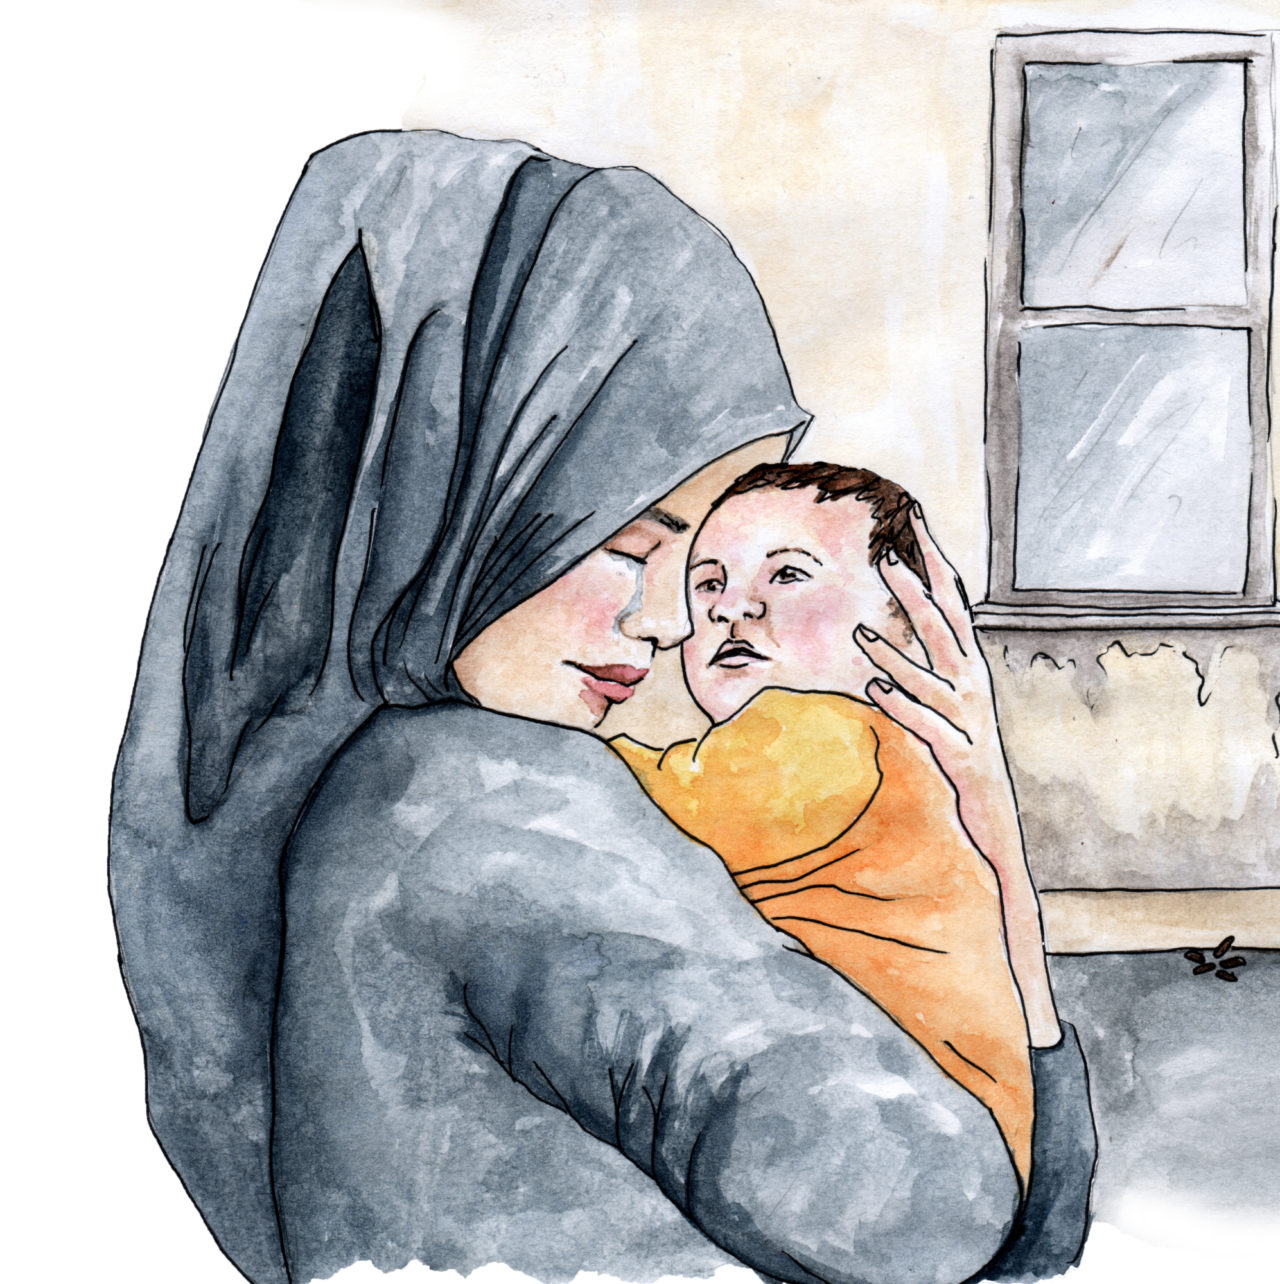 An image of a woman hugging her baby in a refuge